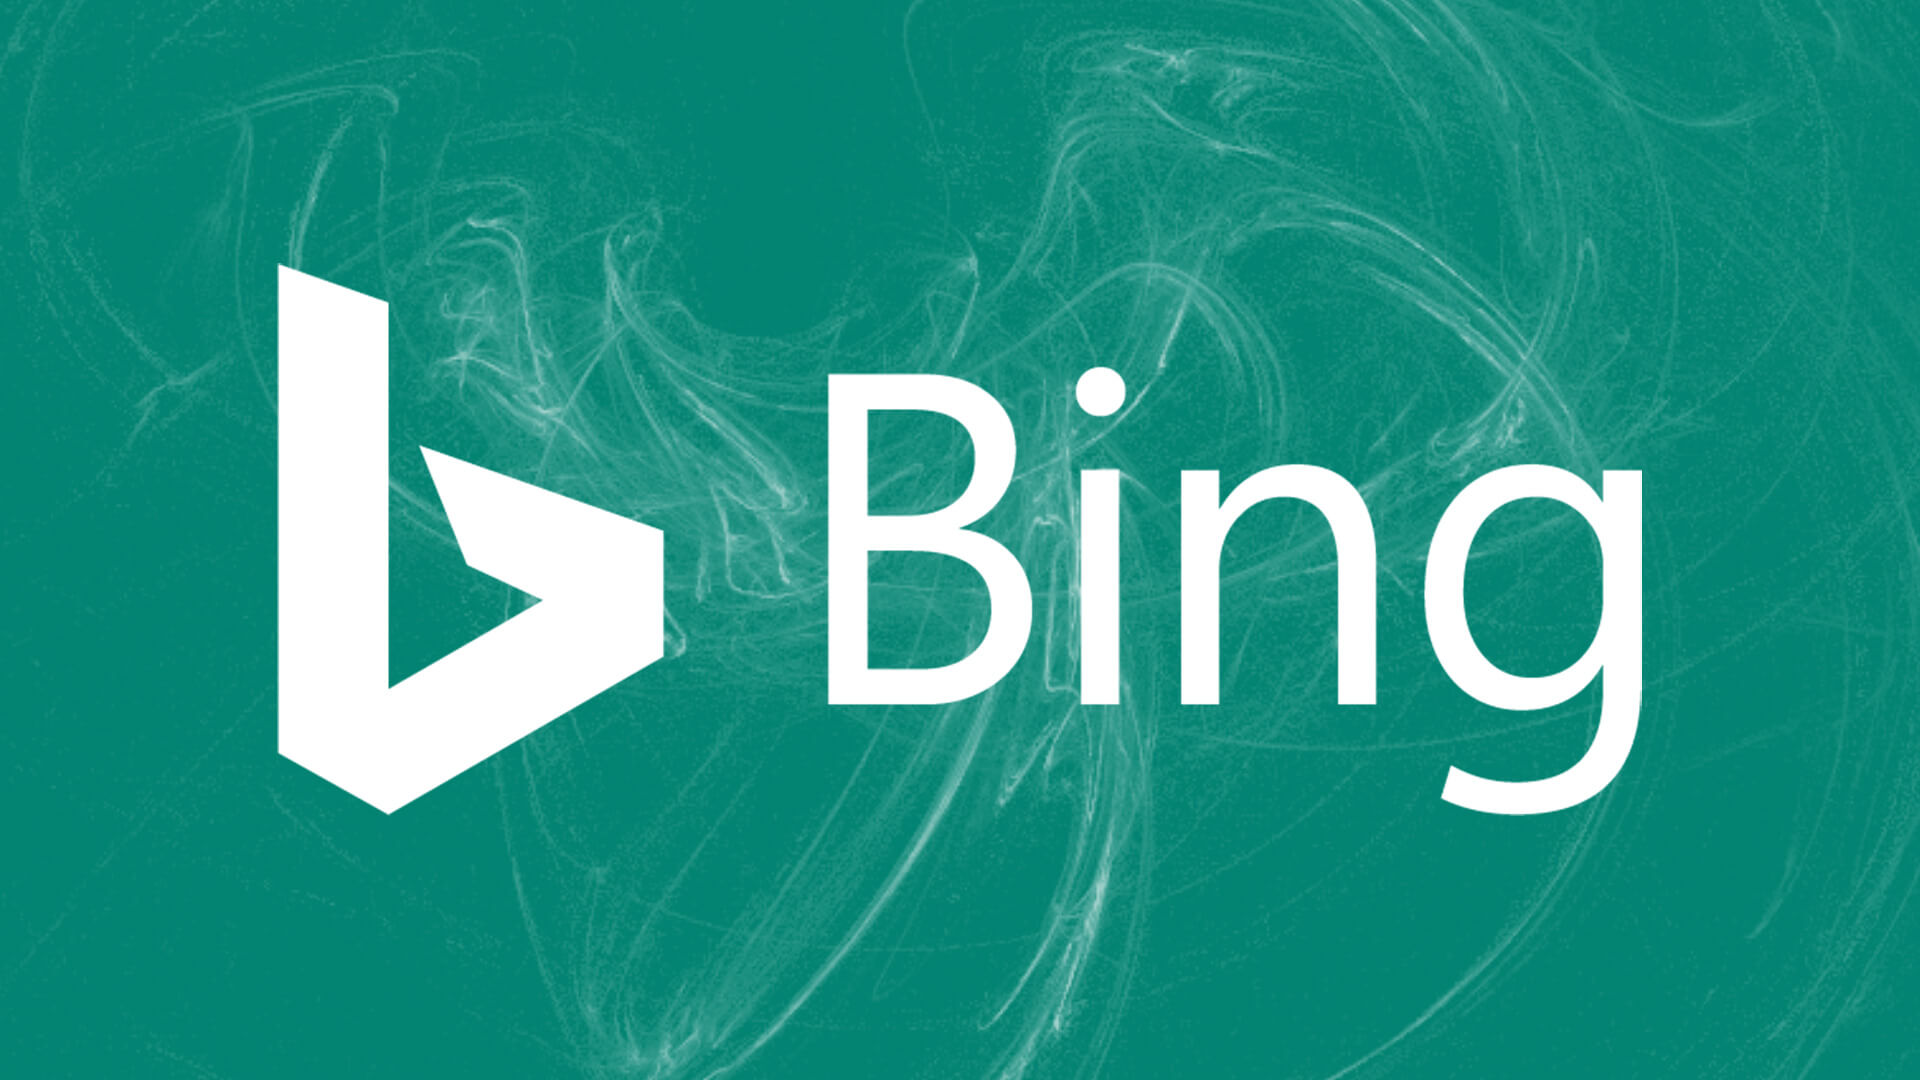 bing-teal-logo-wordmark7-1920